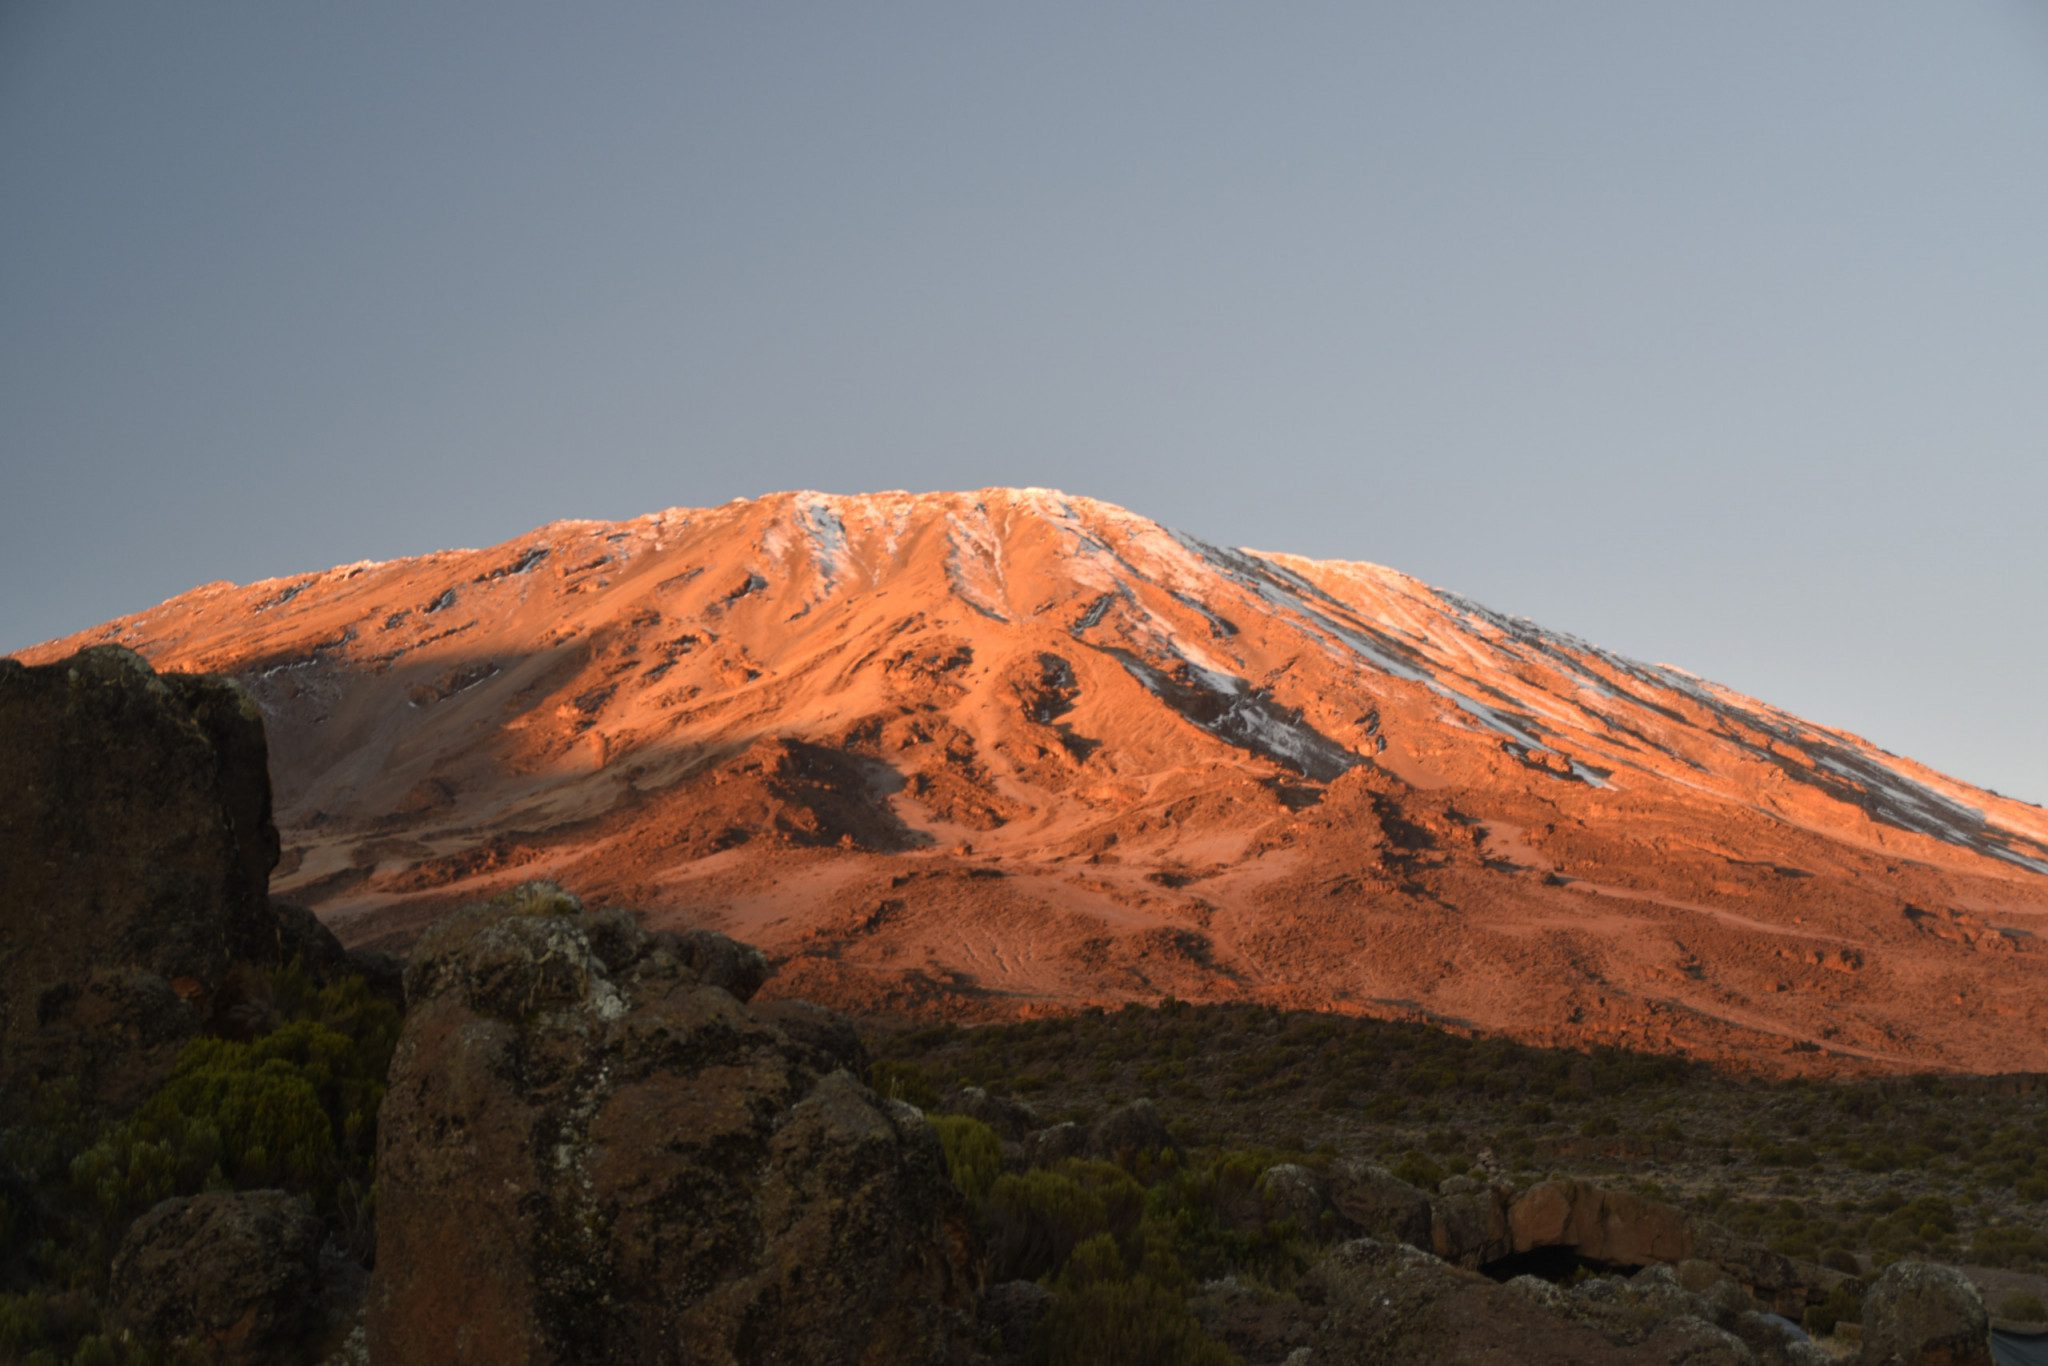 Kibo glows orange in the sunset, from Third Cave Campsite